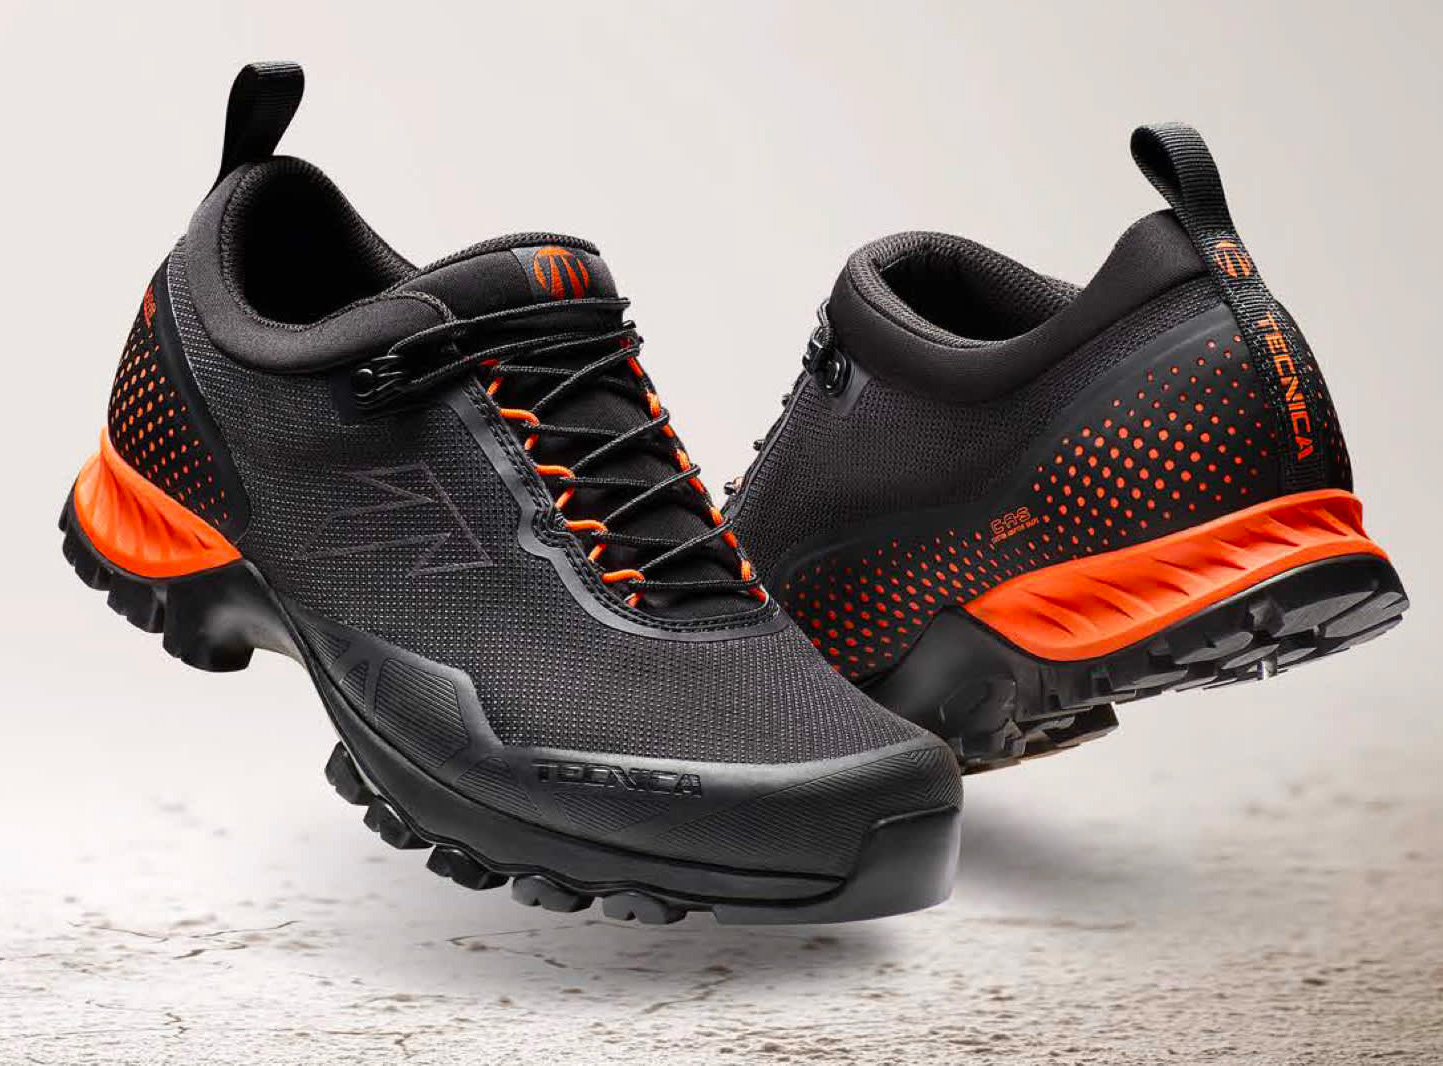 Tecnica Introduces Adaptive-Fit Plasma Hiker at werd.com